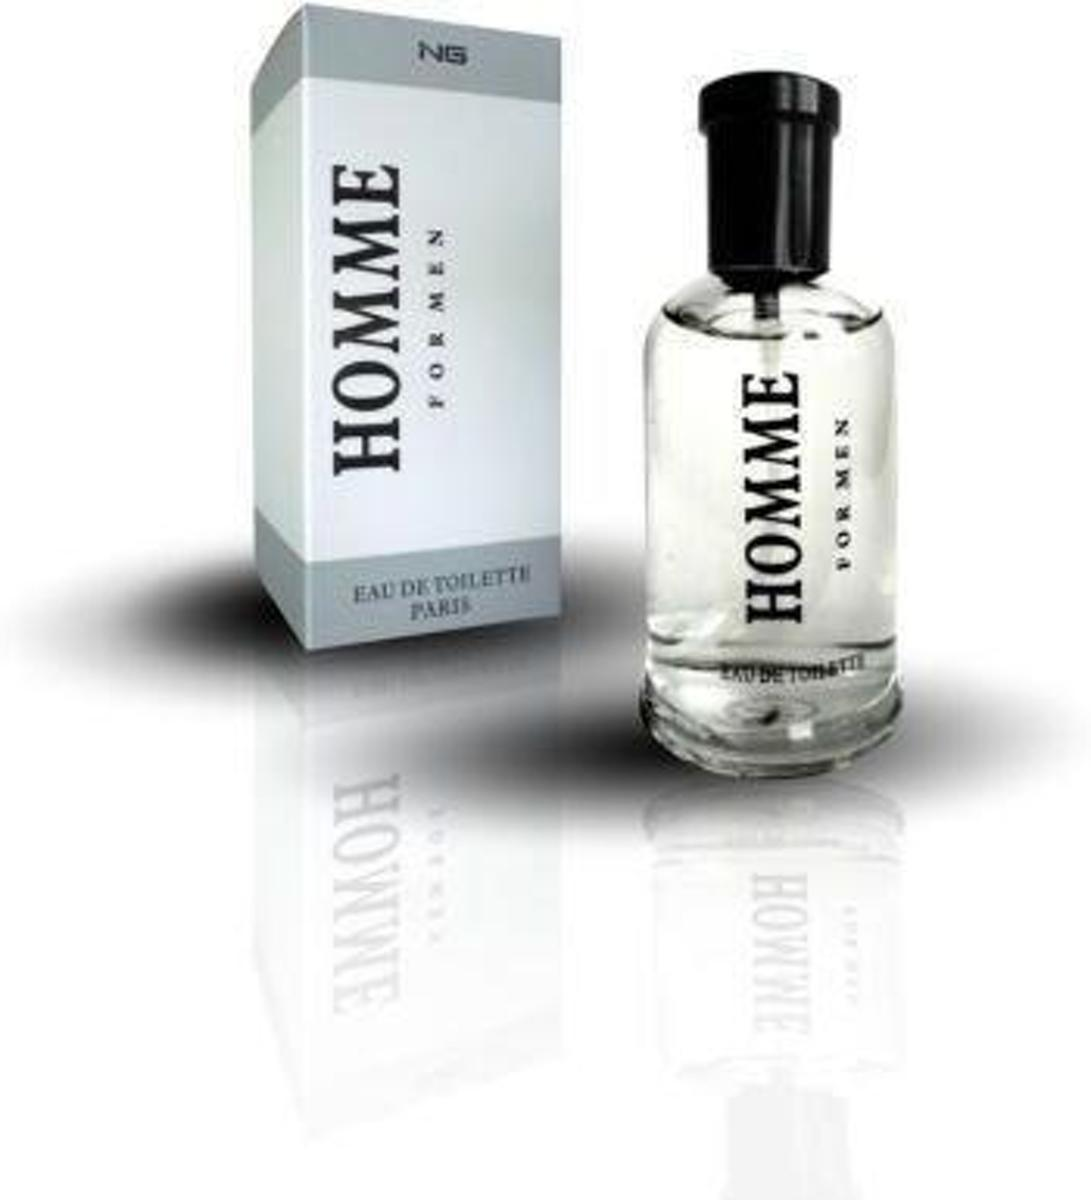 NG Homme for Men - Eau de Toilette - 100 ml - luchtje voor mannen